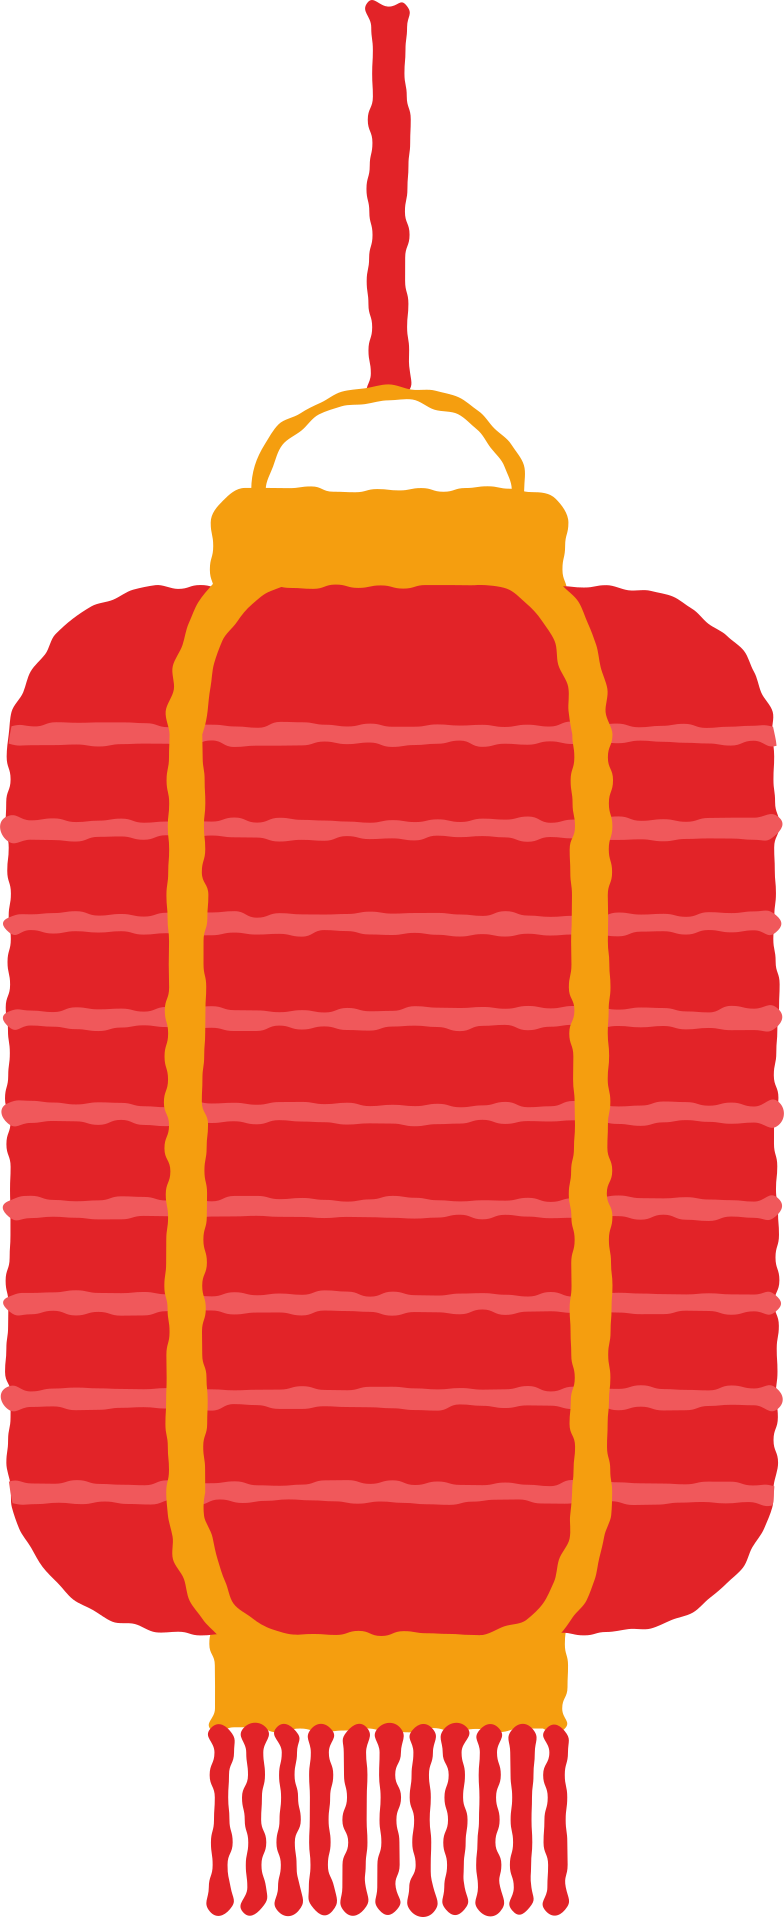 style lantern rectangle with fringe Vector images in PNG and SVG | Icons8 Illustrations